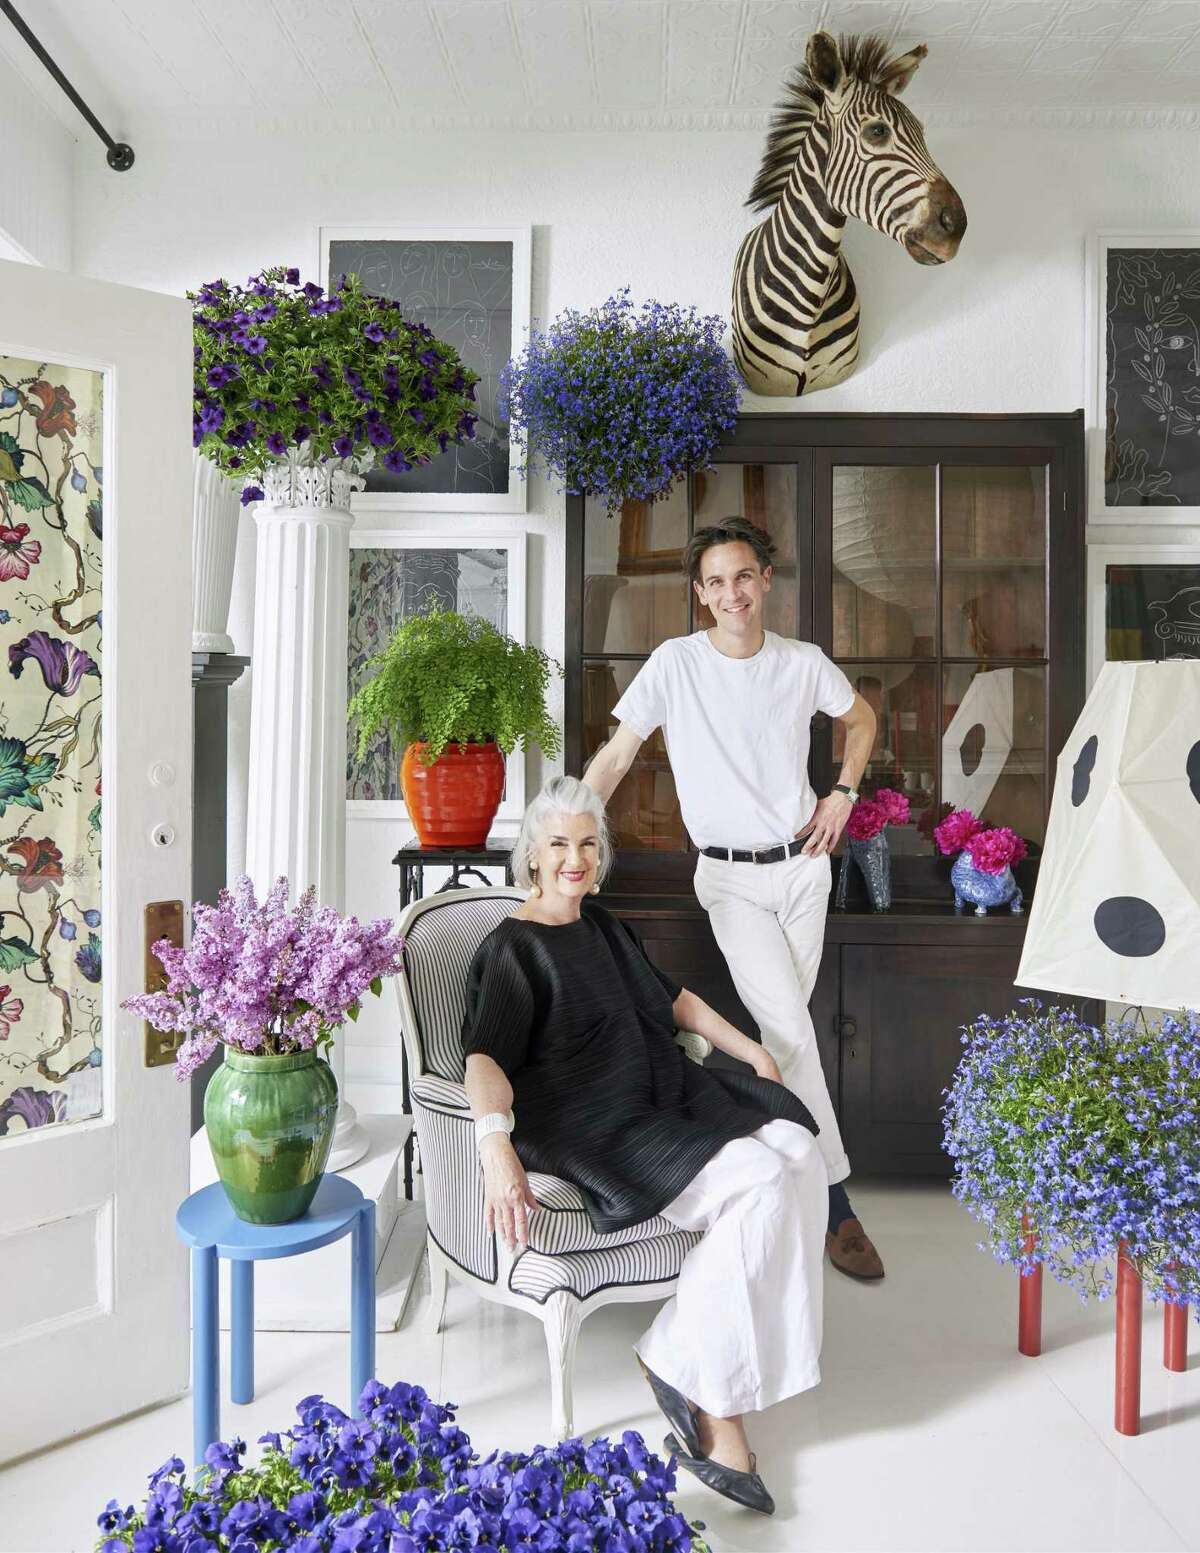 Having garnered the attention of the design world in just a half-dozen years, New York City-based Patrick Mele recently opened a design and decor shop in his hometown of Greenwich, which, like his firm, bears his name. He poses in the store with his mother, Patricia, who tends to shop business when Mele is working off-site on projects.